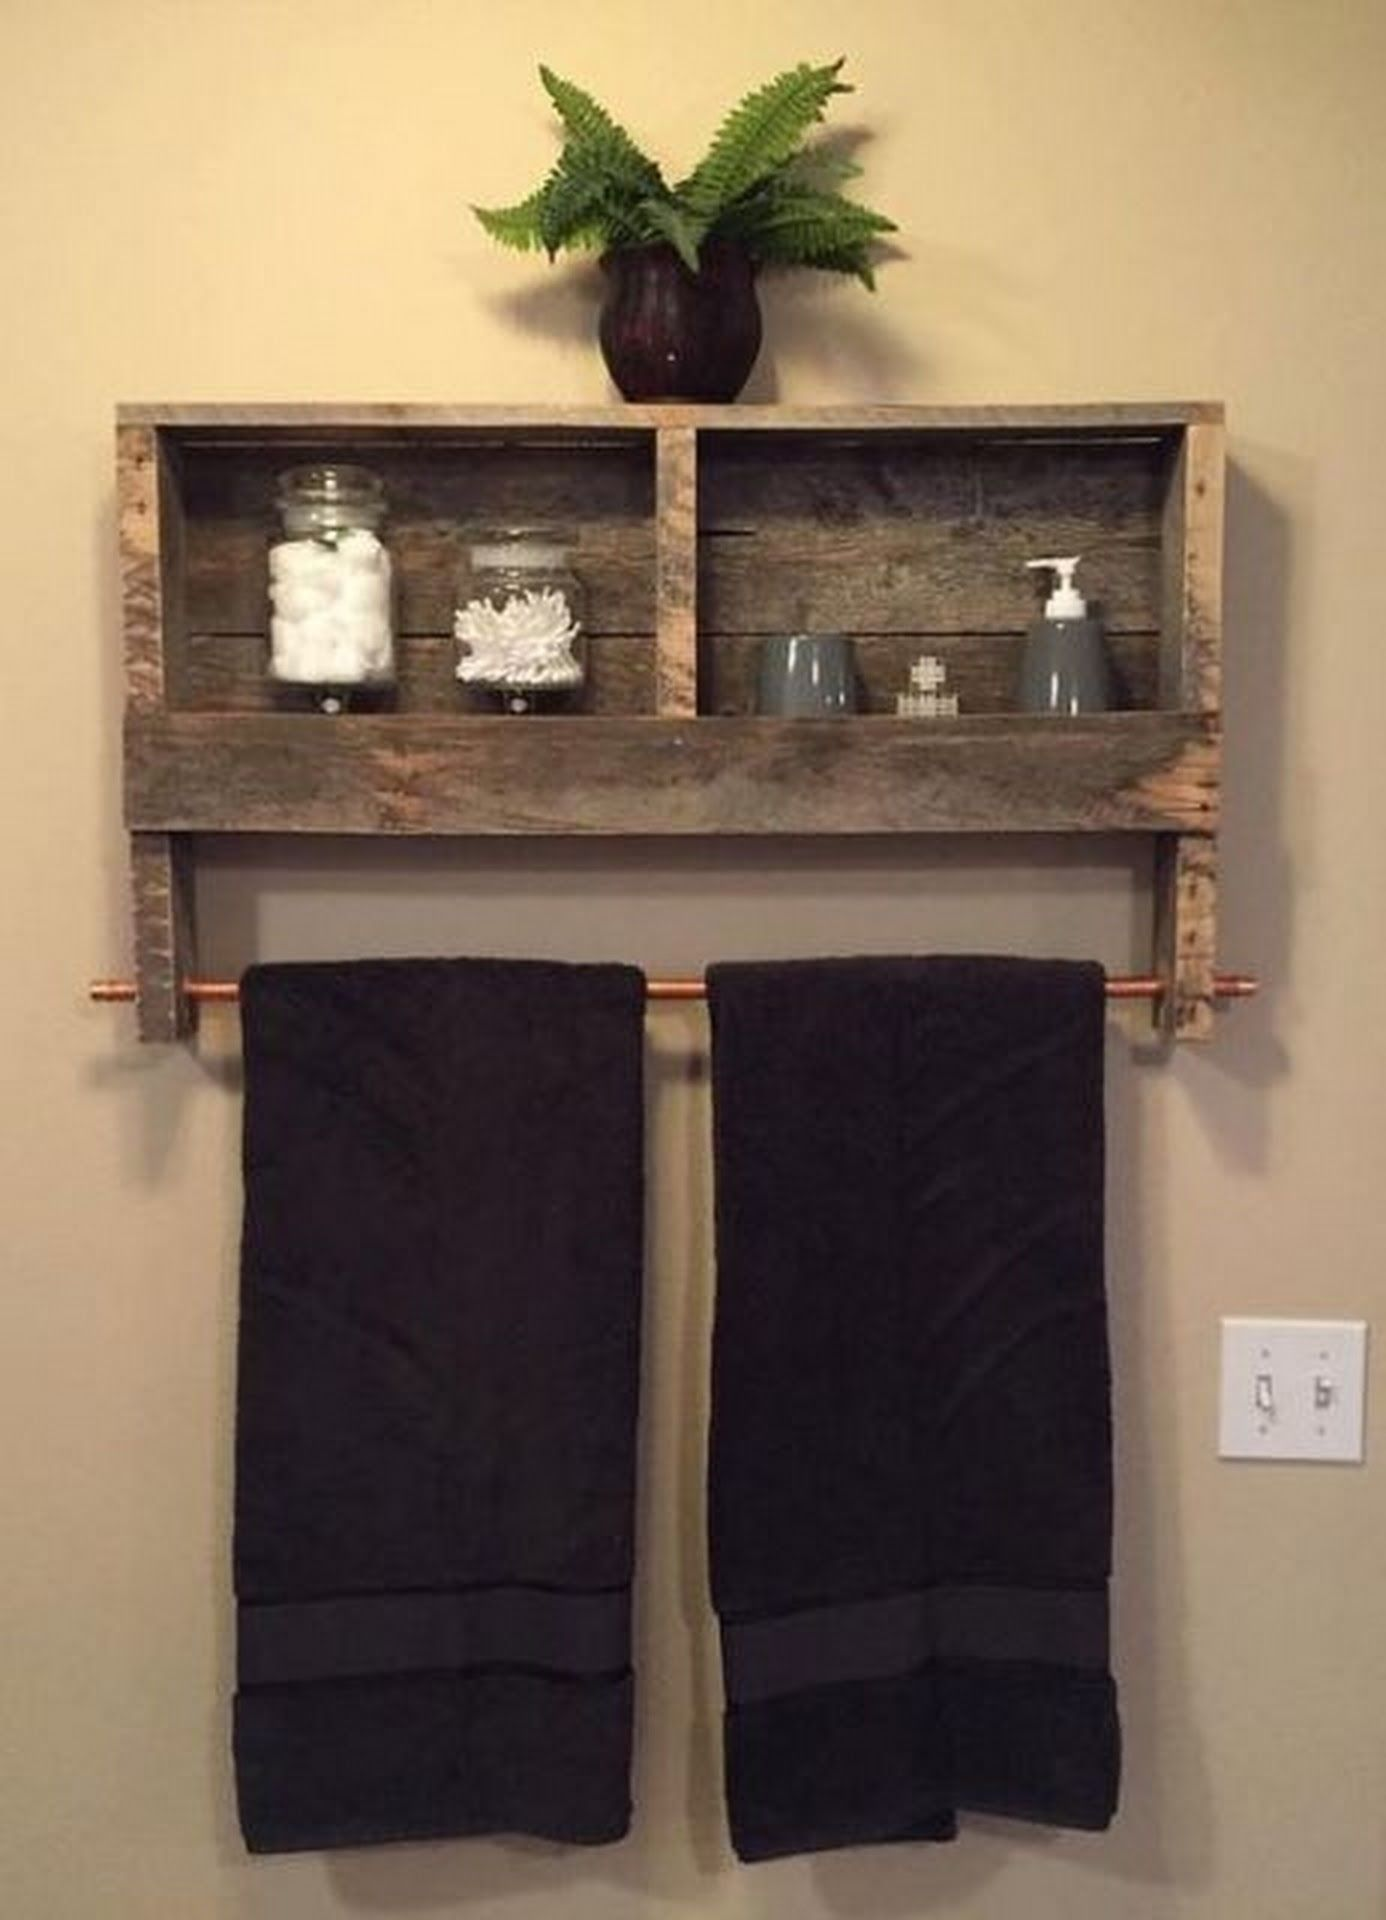 Custom Reclaimed Wood Copper Rod Double Towel Rack Bathroom Shelf Rustic  Home Decor Pallet Furniture Towel Rack by BandVRusticDesigns on Etsy